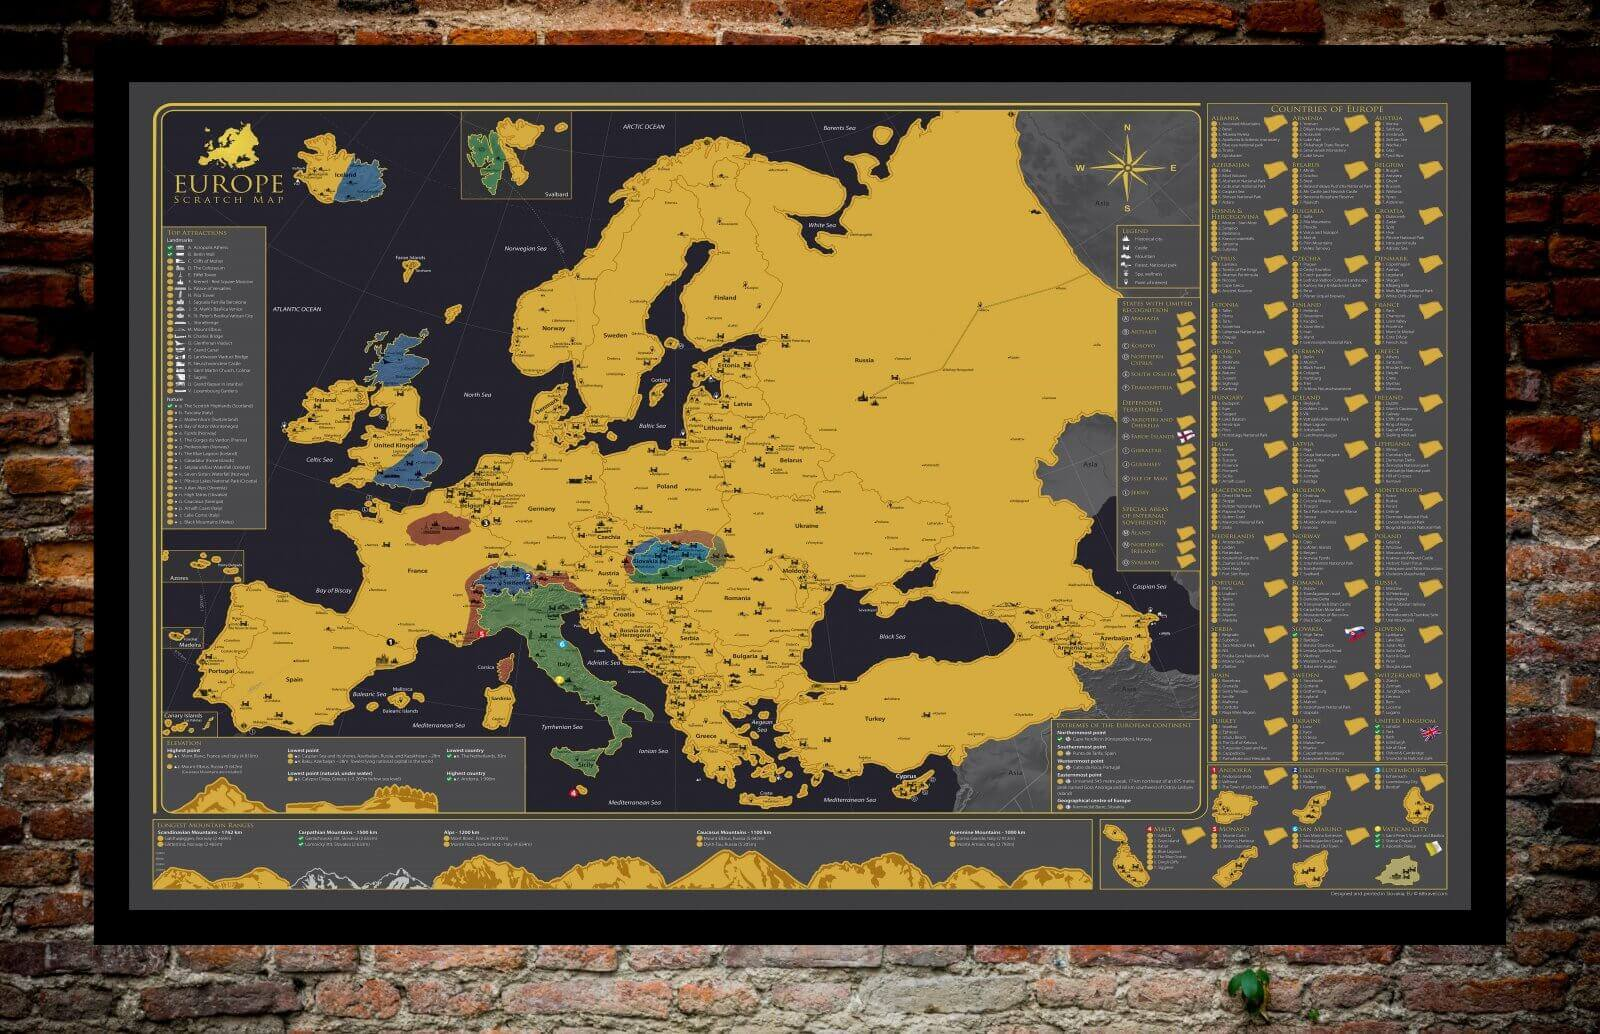 Scratch Map of Europe - shown with scratched away parts